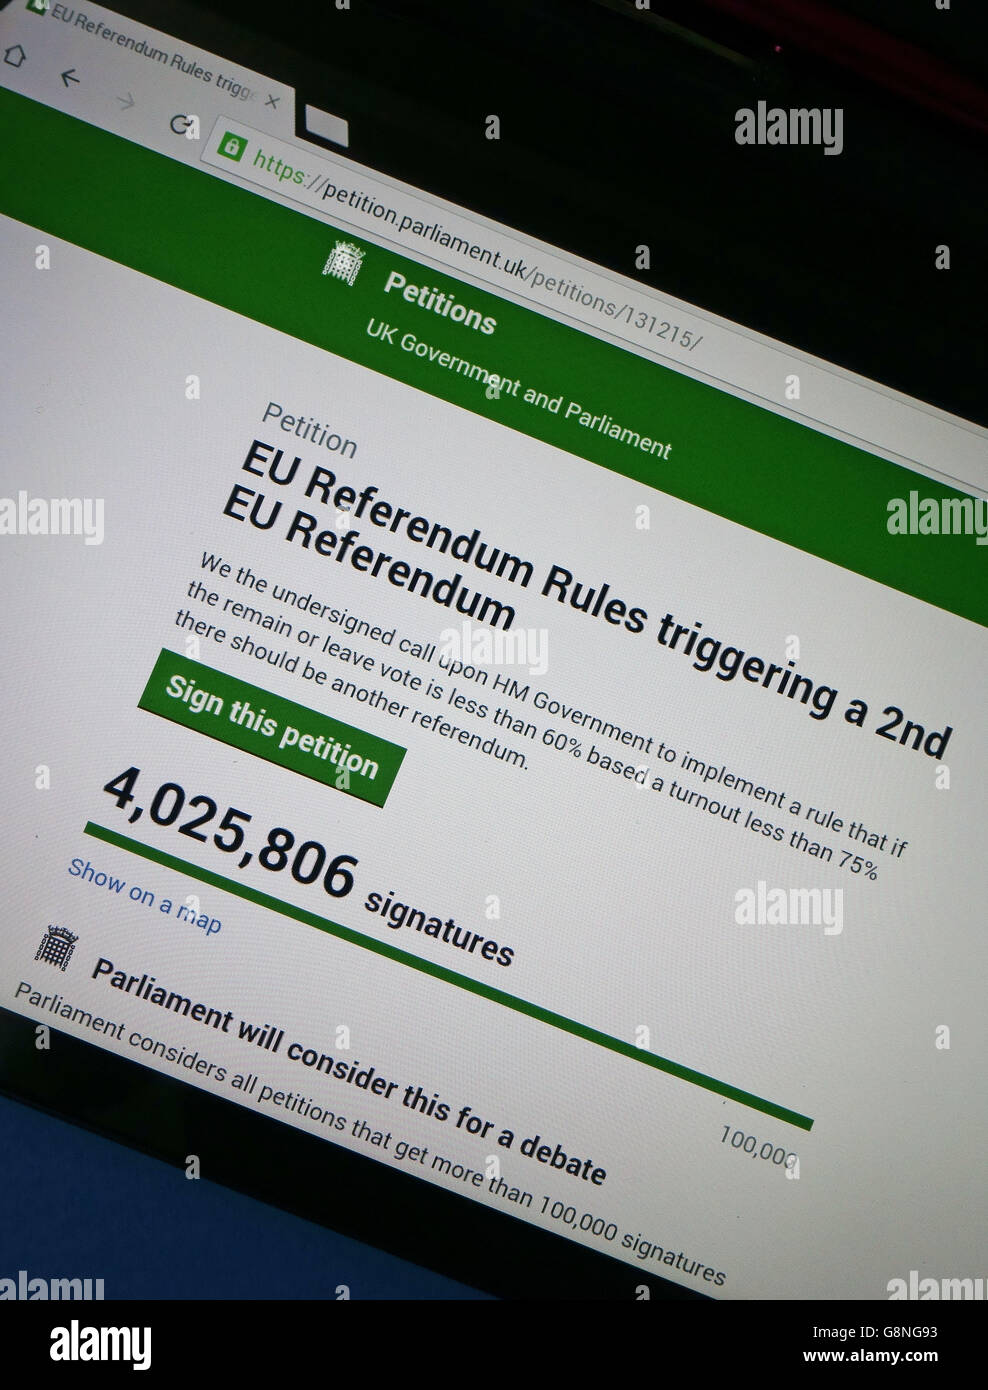 Online petition calling for 2nd EU Referendum exceeds 4 million signatures, London - Stock Image